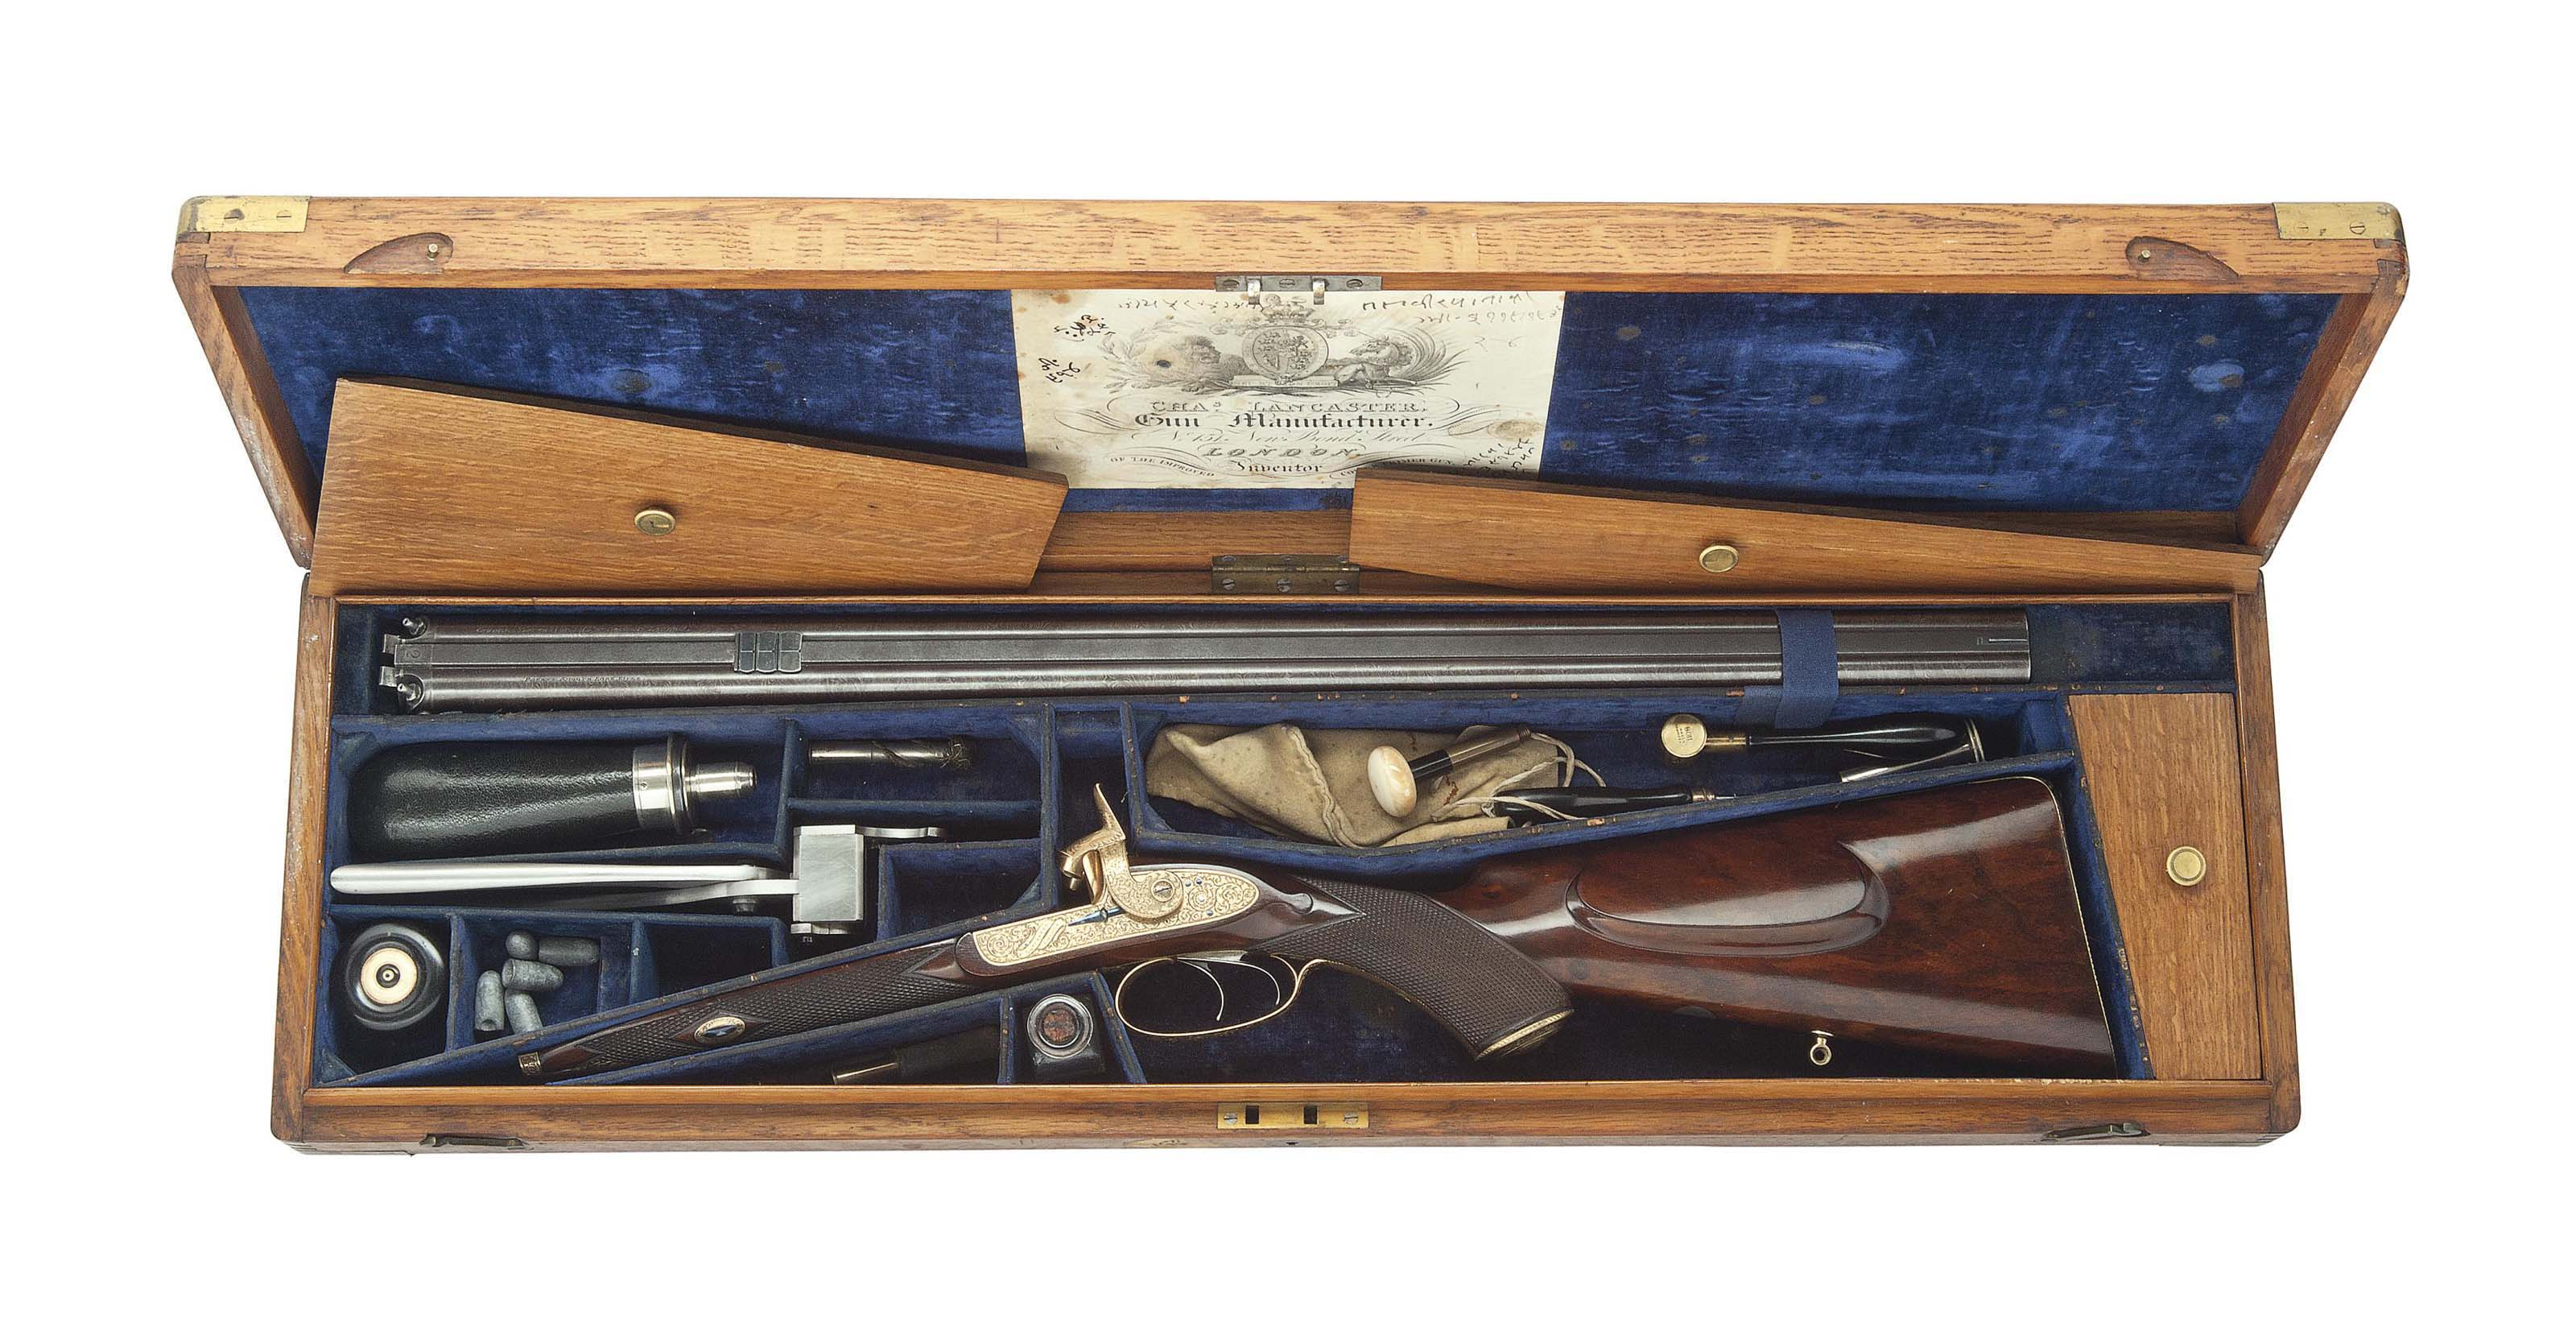 A MAGNIFICENT CASED 40-BORE DOUBLE-BARRELLED PERCUSSION OVAL-BORE RIFLE MADE FOR THE MAHARAJA OF JODPHUR